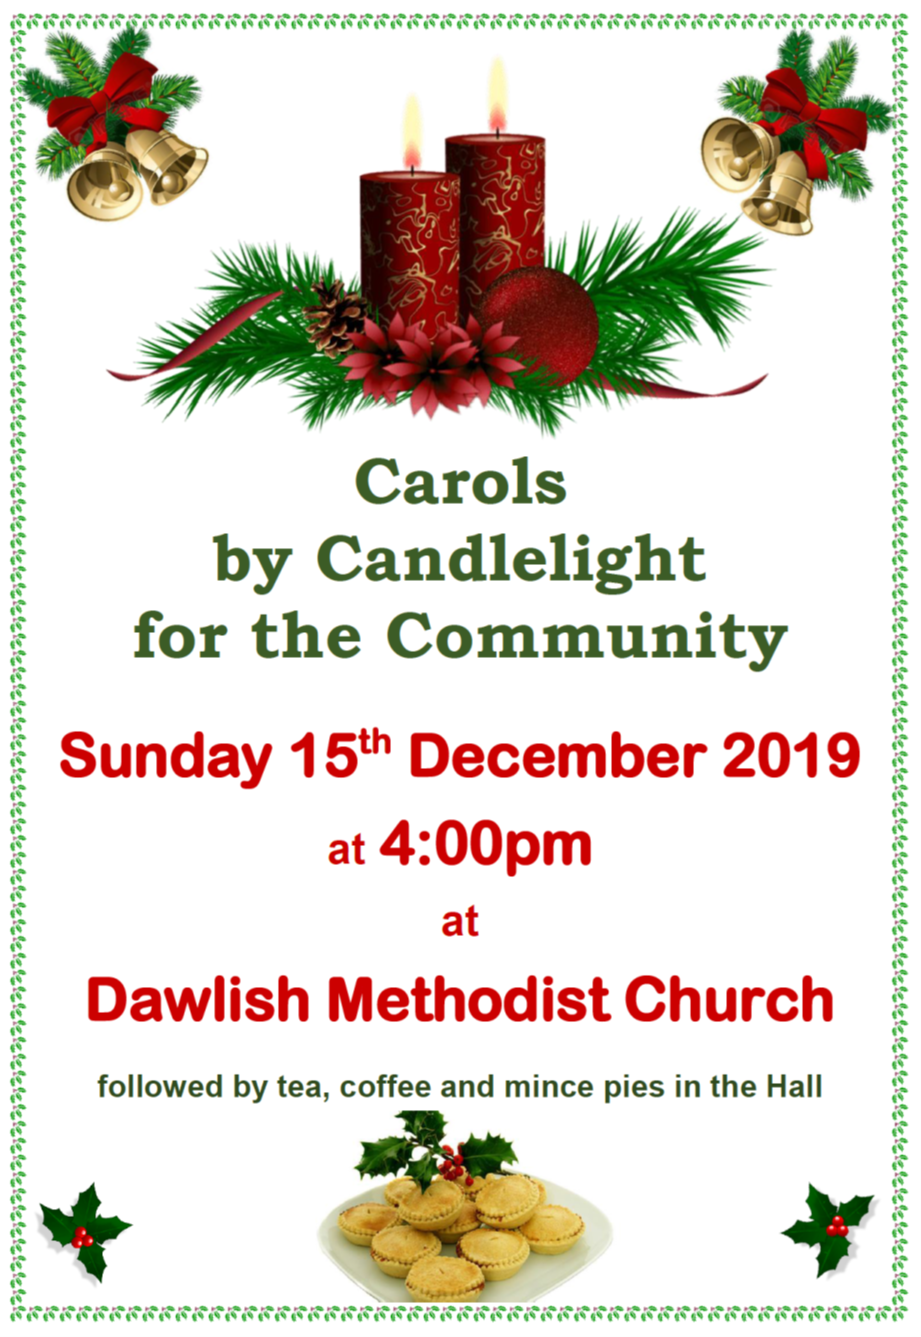 Dawlish MC Community Carols by Candlelight @ Dawlish Methodist Church